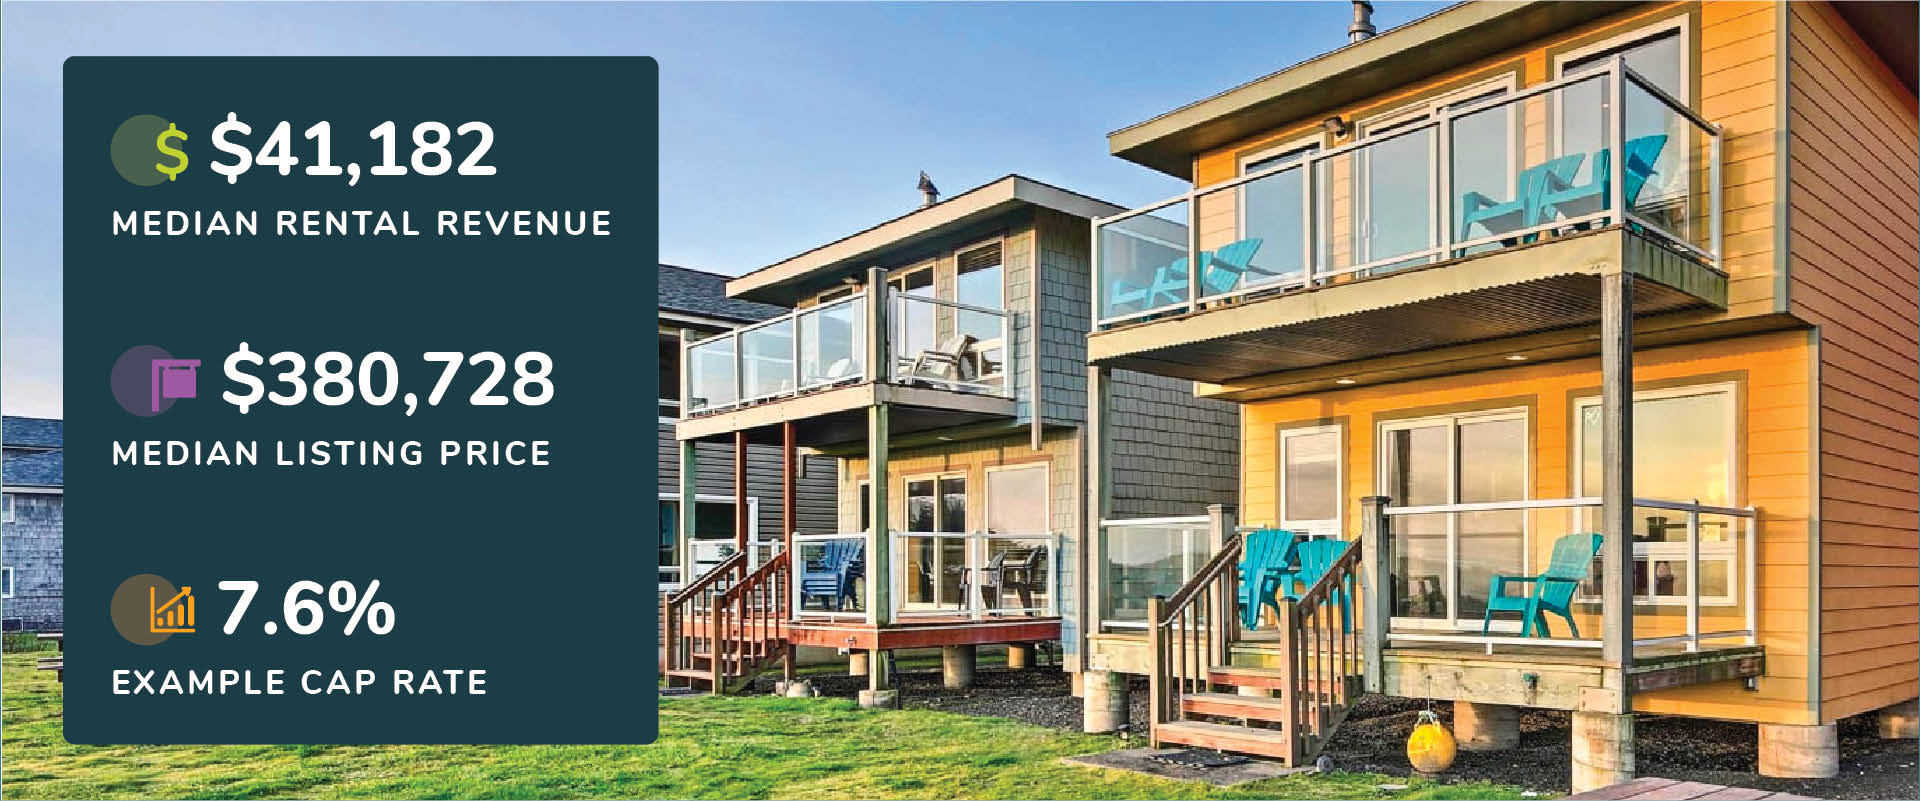 Graphic showing Waldport, Oregon median rental revenue, listing price, and cap rate with a picture of homes with porches and sunset views.